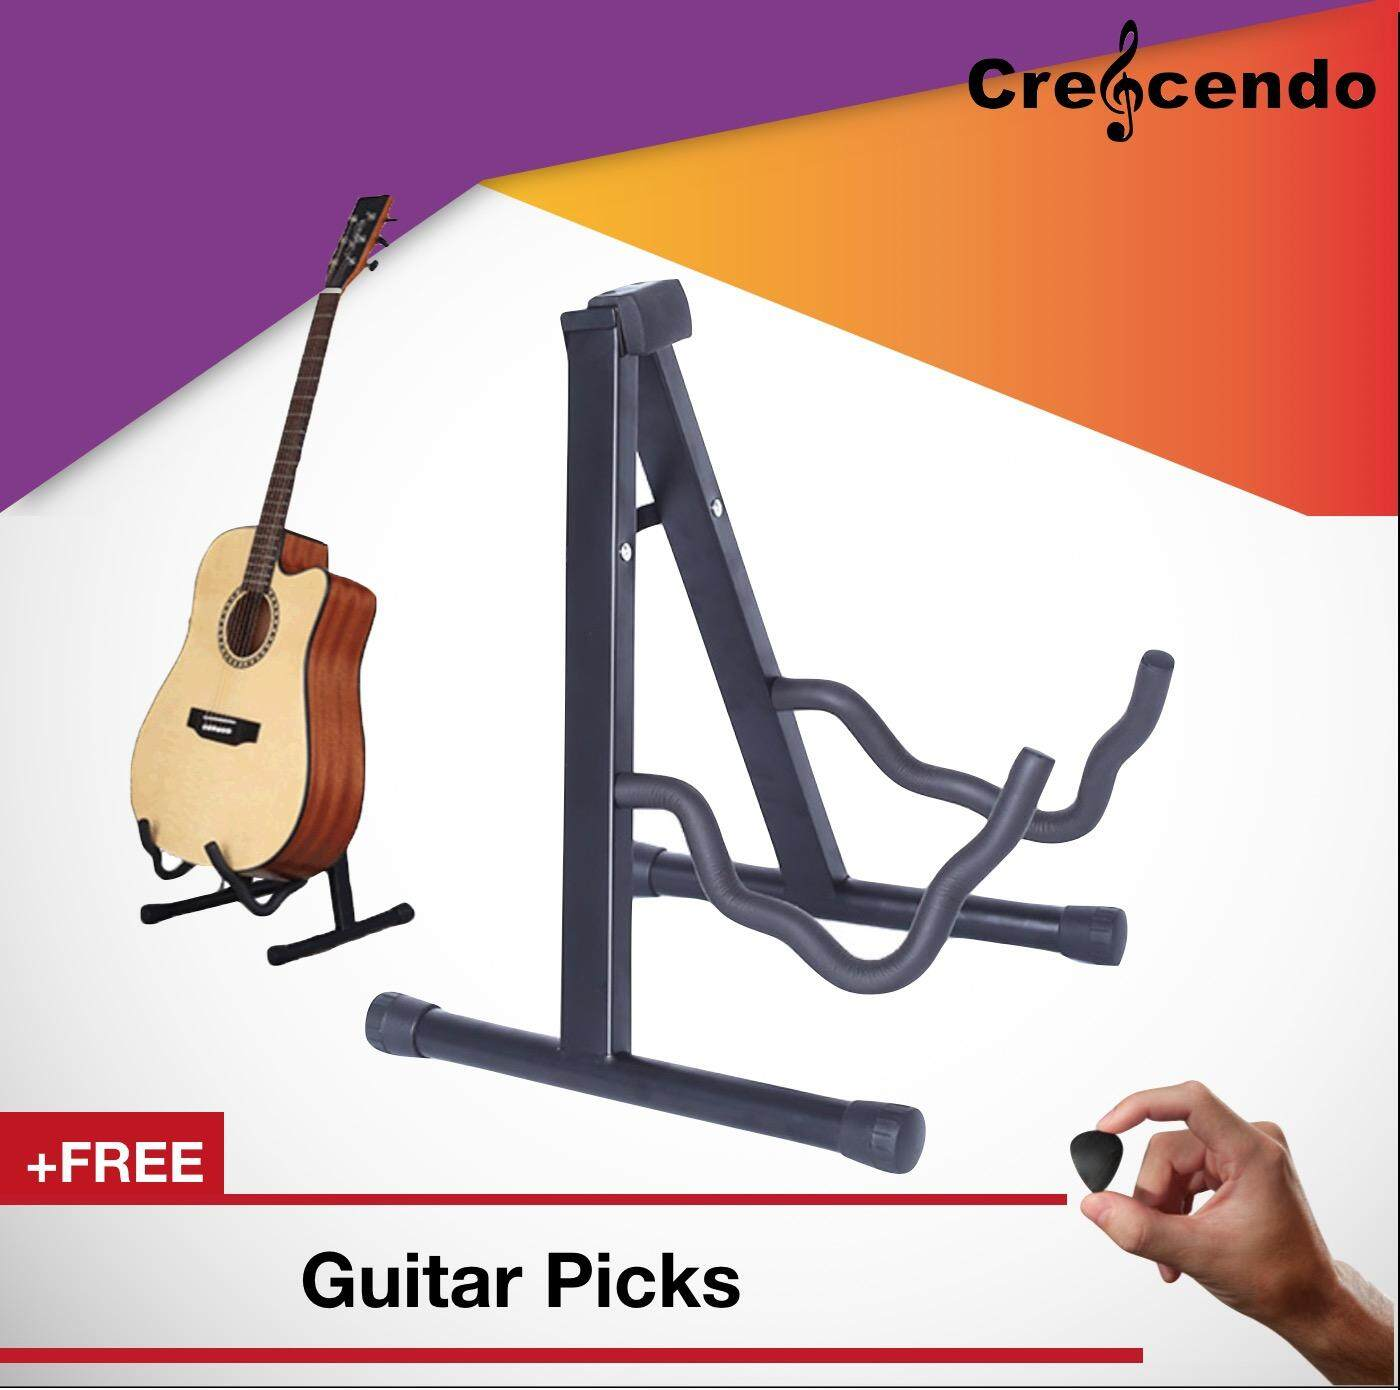 Guitar A Frame Foldable Guitar Stand For Acoustic, Electric , Bass Guitar And Ukulele By Crescendo.